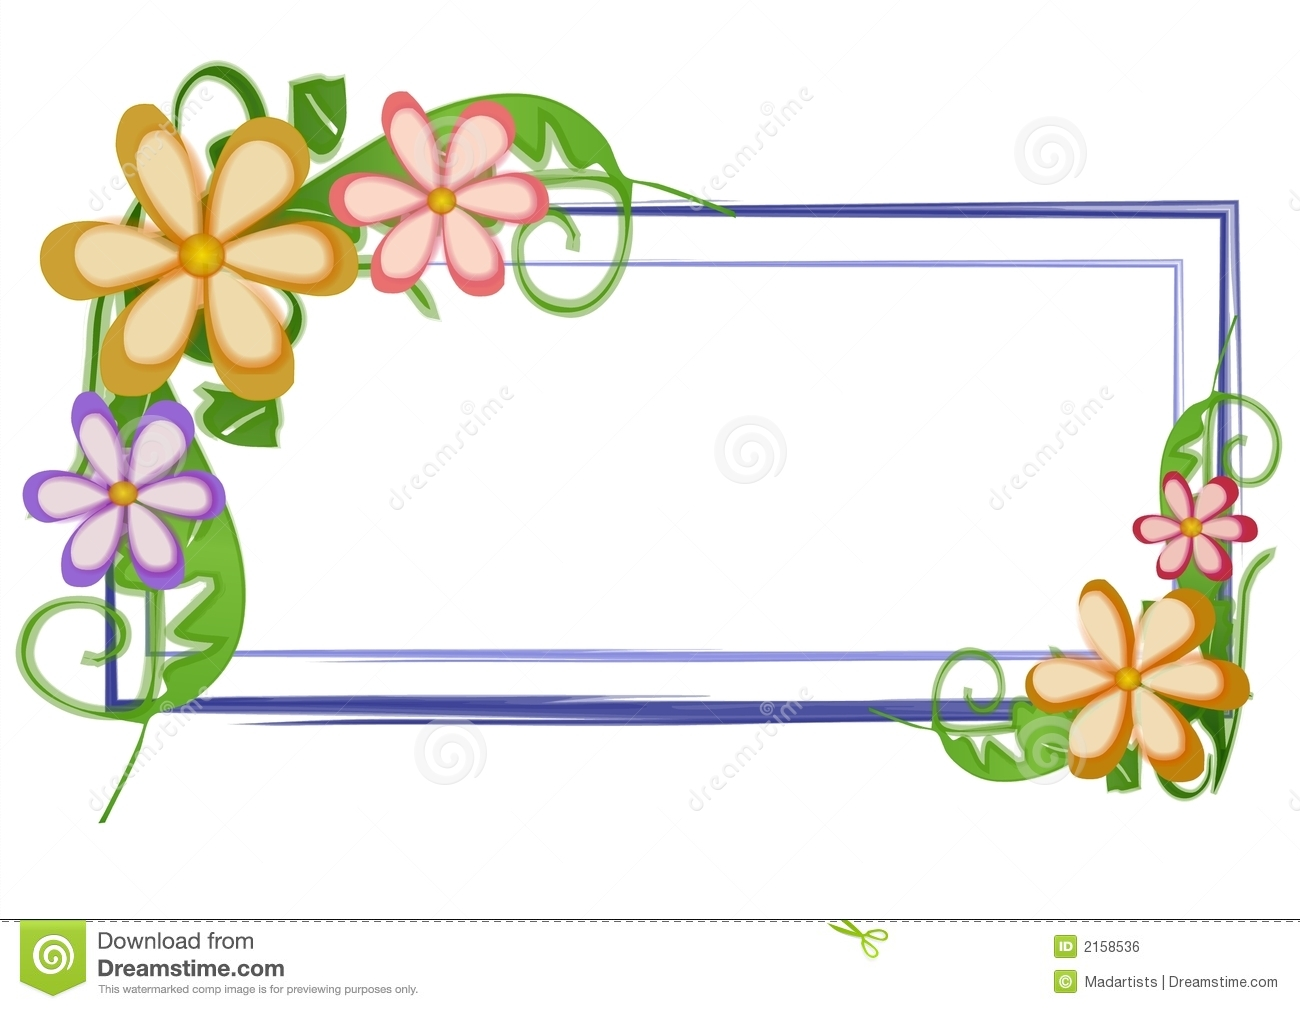 Web page logo flowers floral stock illustration for Flower tags template free